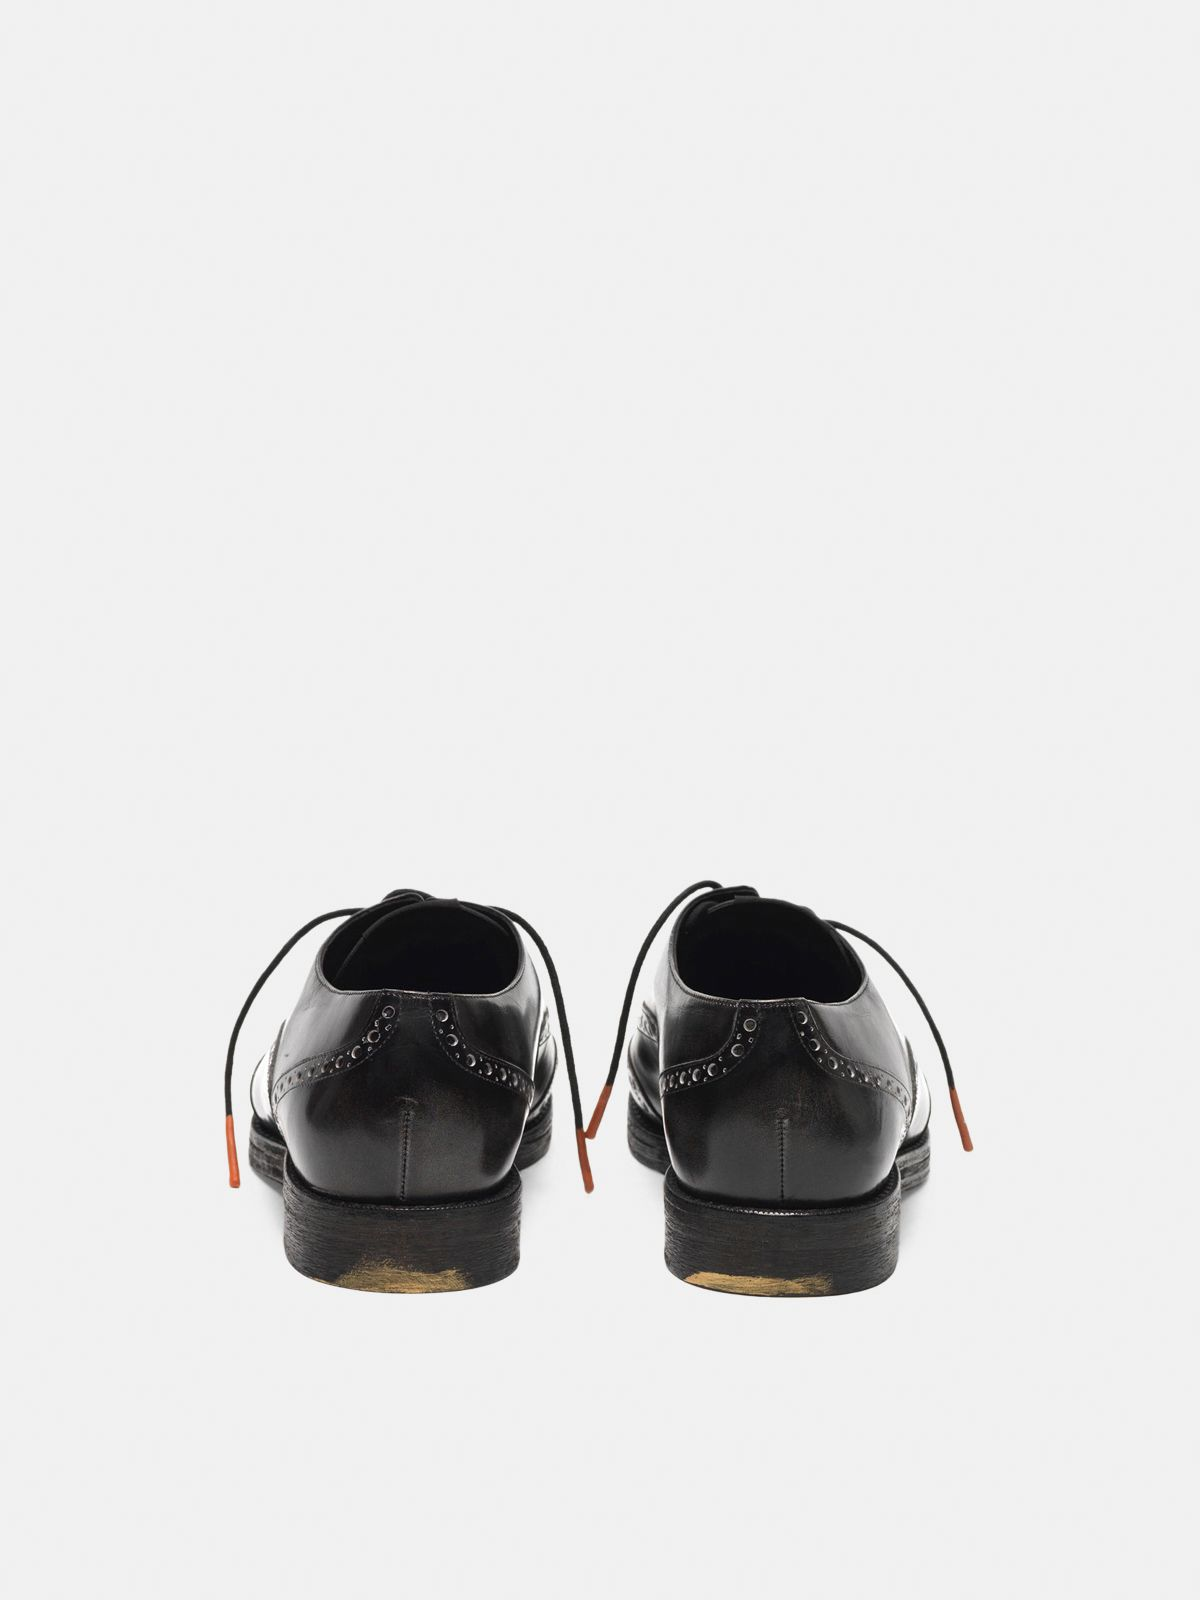 Golden Goose - Ball shoes made of leather with brogue on the toe in